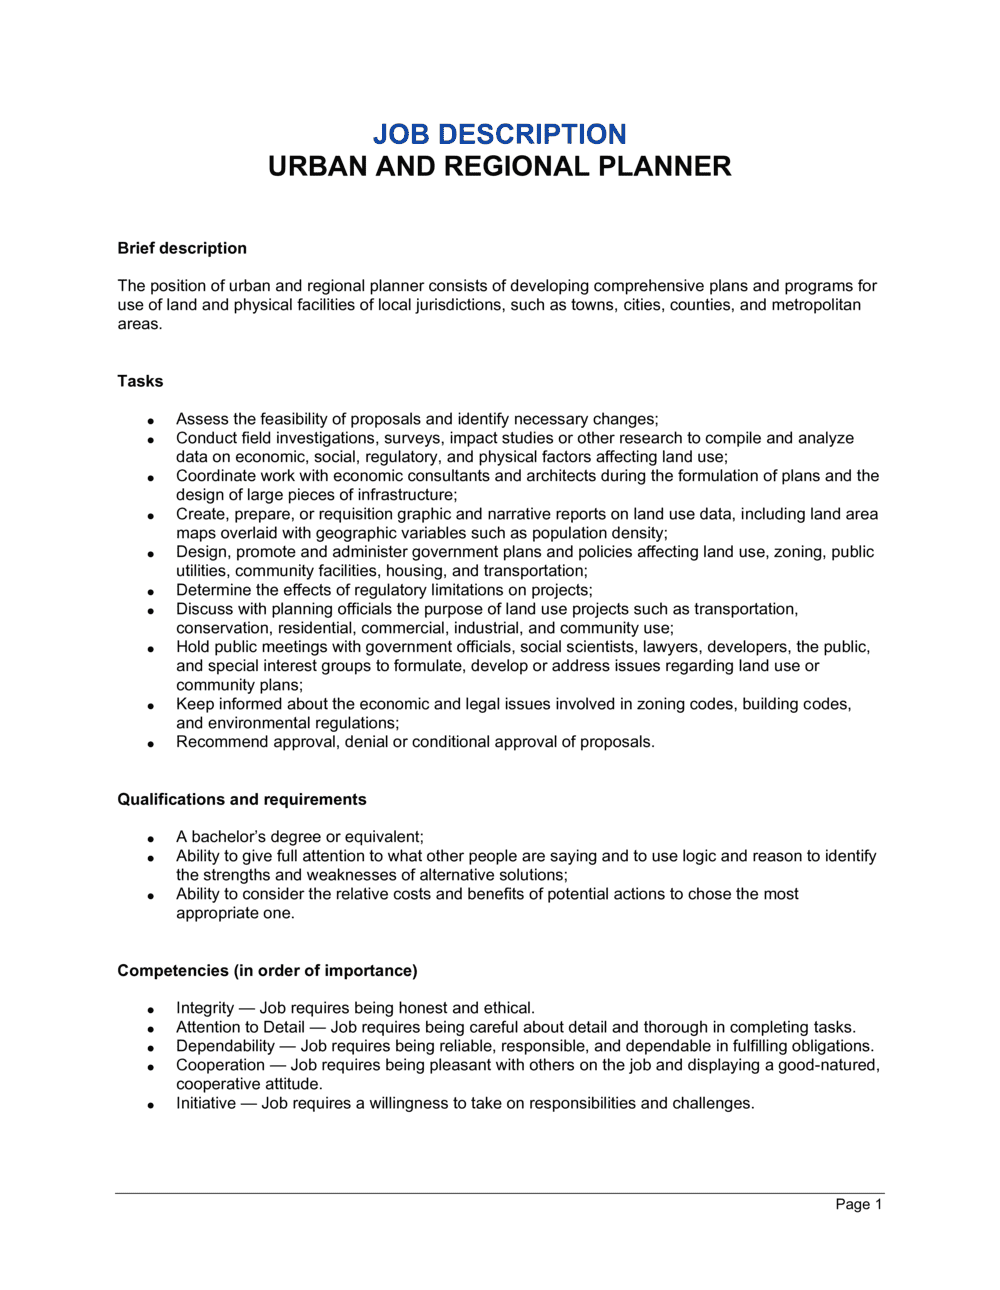 Business-in-a-Box's Urban and Regional Planner Job Description Template